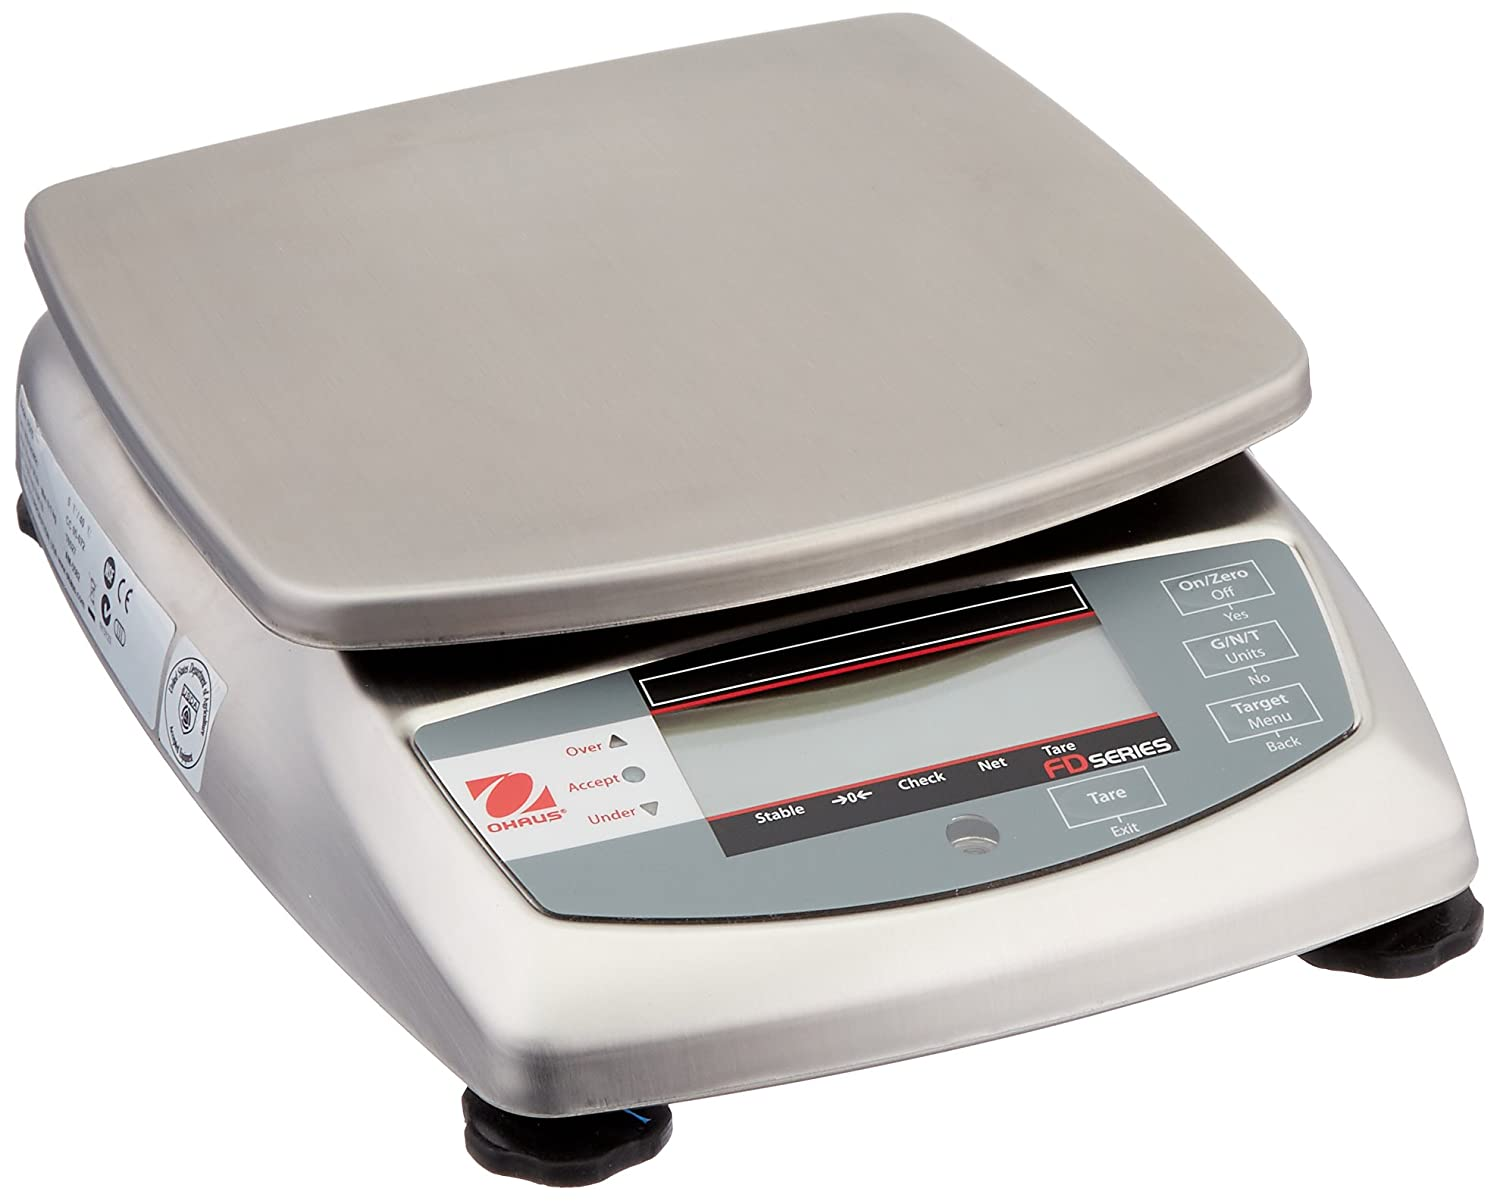 Ohaus FD15 FD Series Stainless Steel Food Portioning Scale, Legal for Trade, 30lb Capacity, 0.005lb Readability